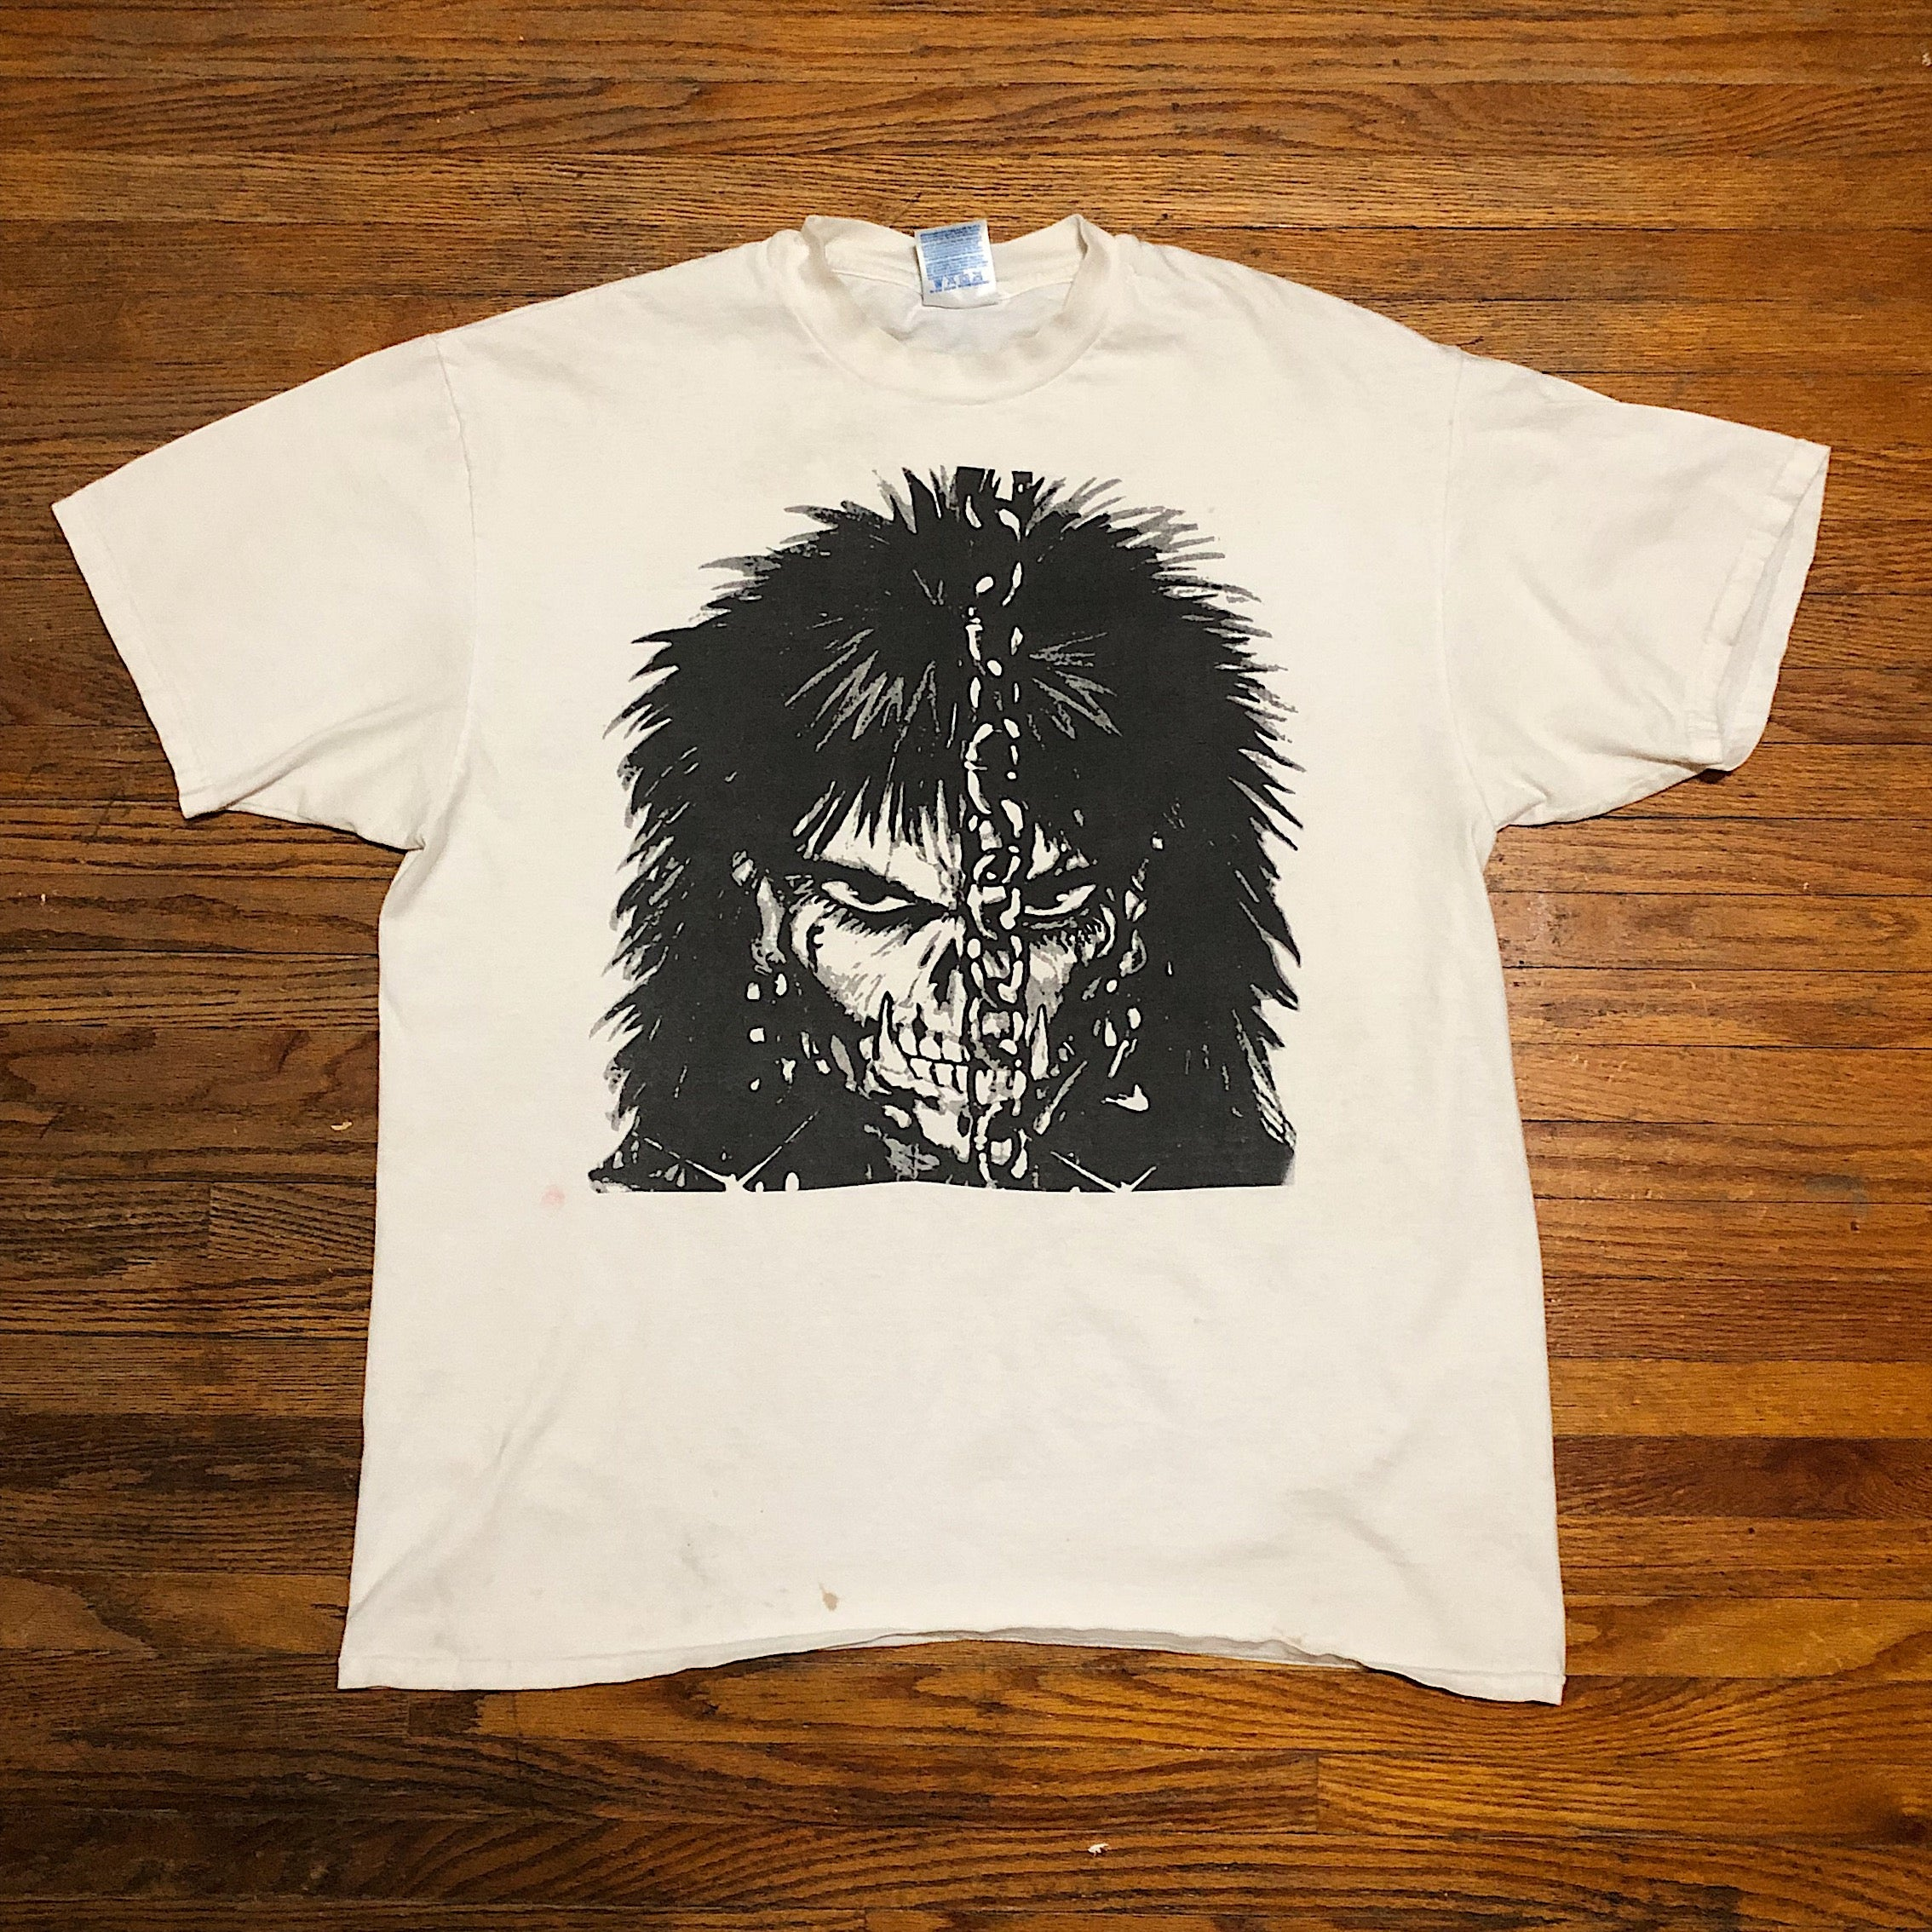 Vintage Punk Goth T-Shirt from the 90s - XL - The Crow Comic - James O'Barr - Hanes Beefy-T Tag - Skull Figure